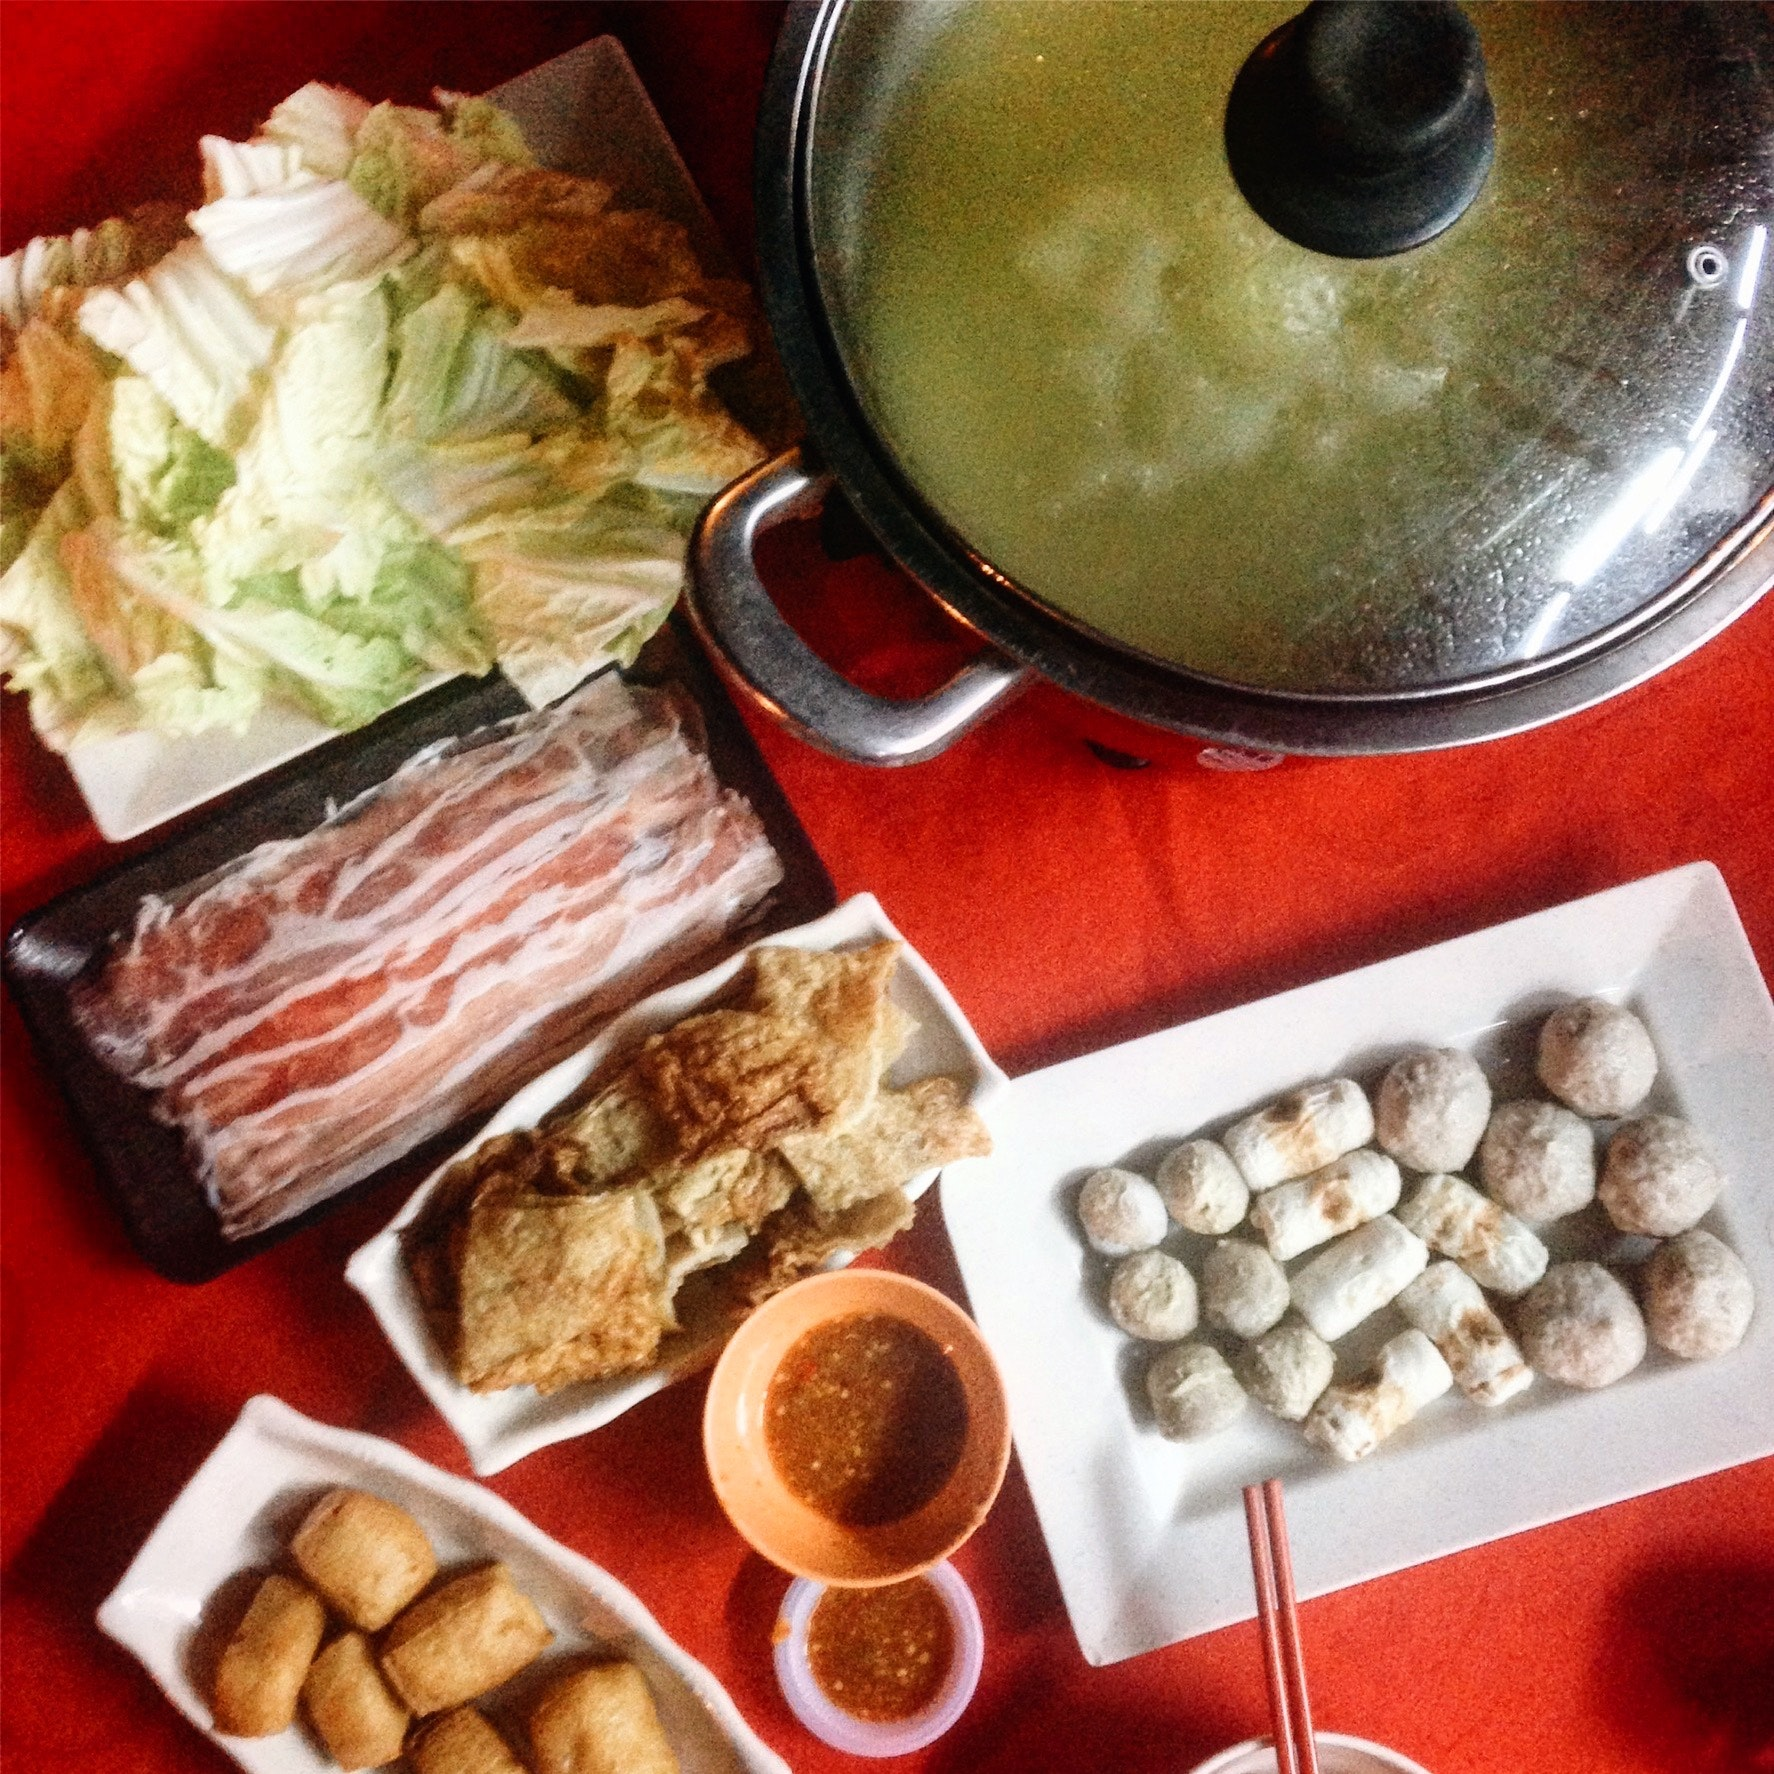 For Scrumptious Steamboat with Crab Roe